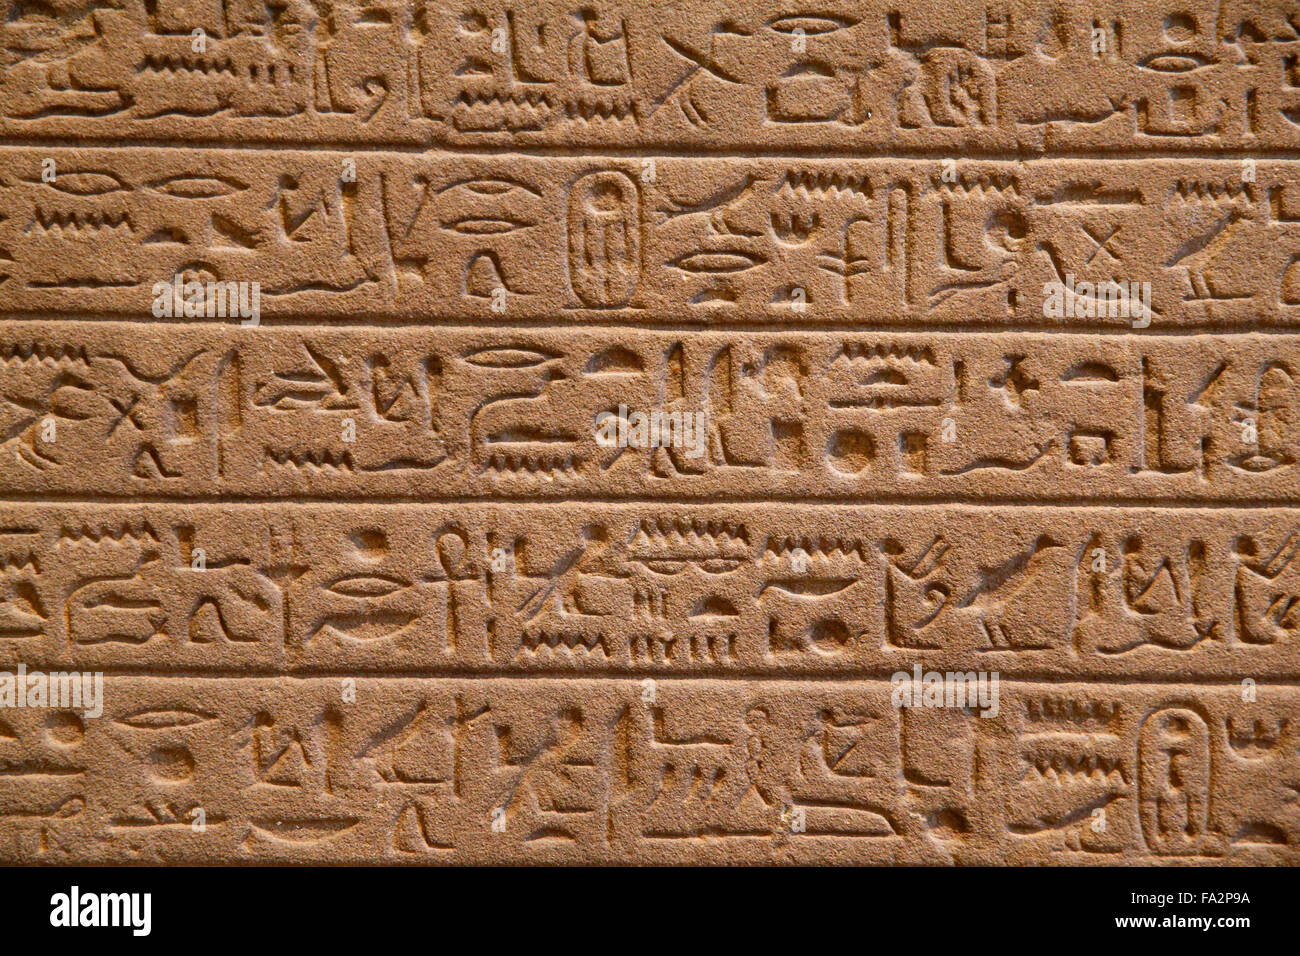 Egyptian stele. Hieroglyphs. Fragments of an offering list. Reign of Thutmose III. (1479 - 1425 BC.). Louvre museum. - Stock Image